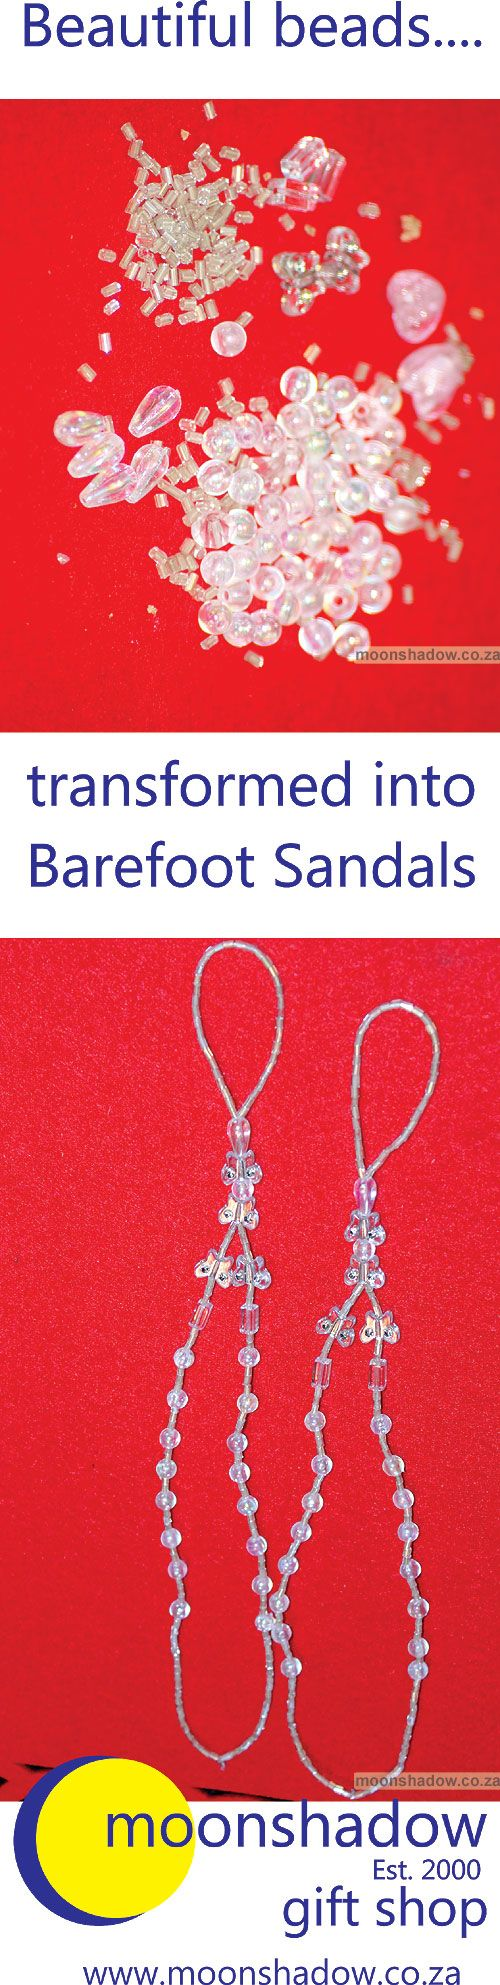 Beautiful beads + creativity = lovely Barefoot Sandals! (Hand-crafted in Moonshadow's Studio, #Swellendam)